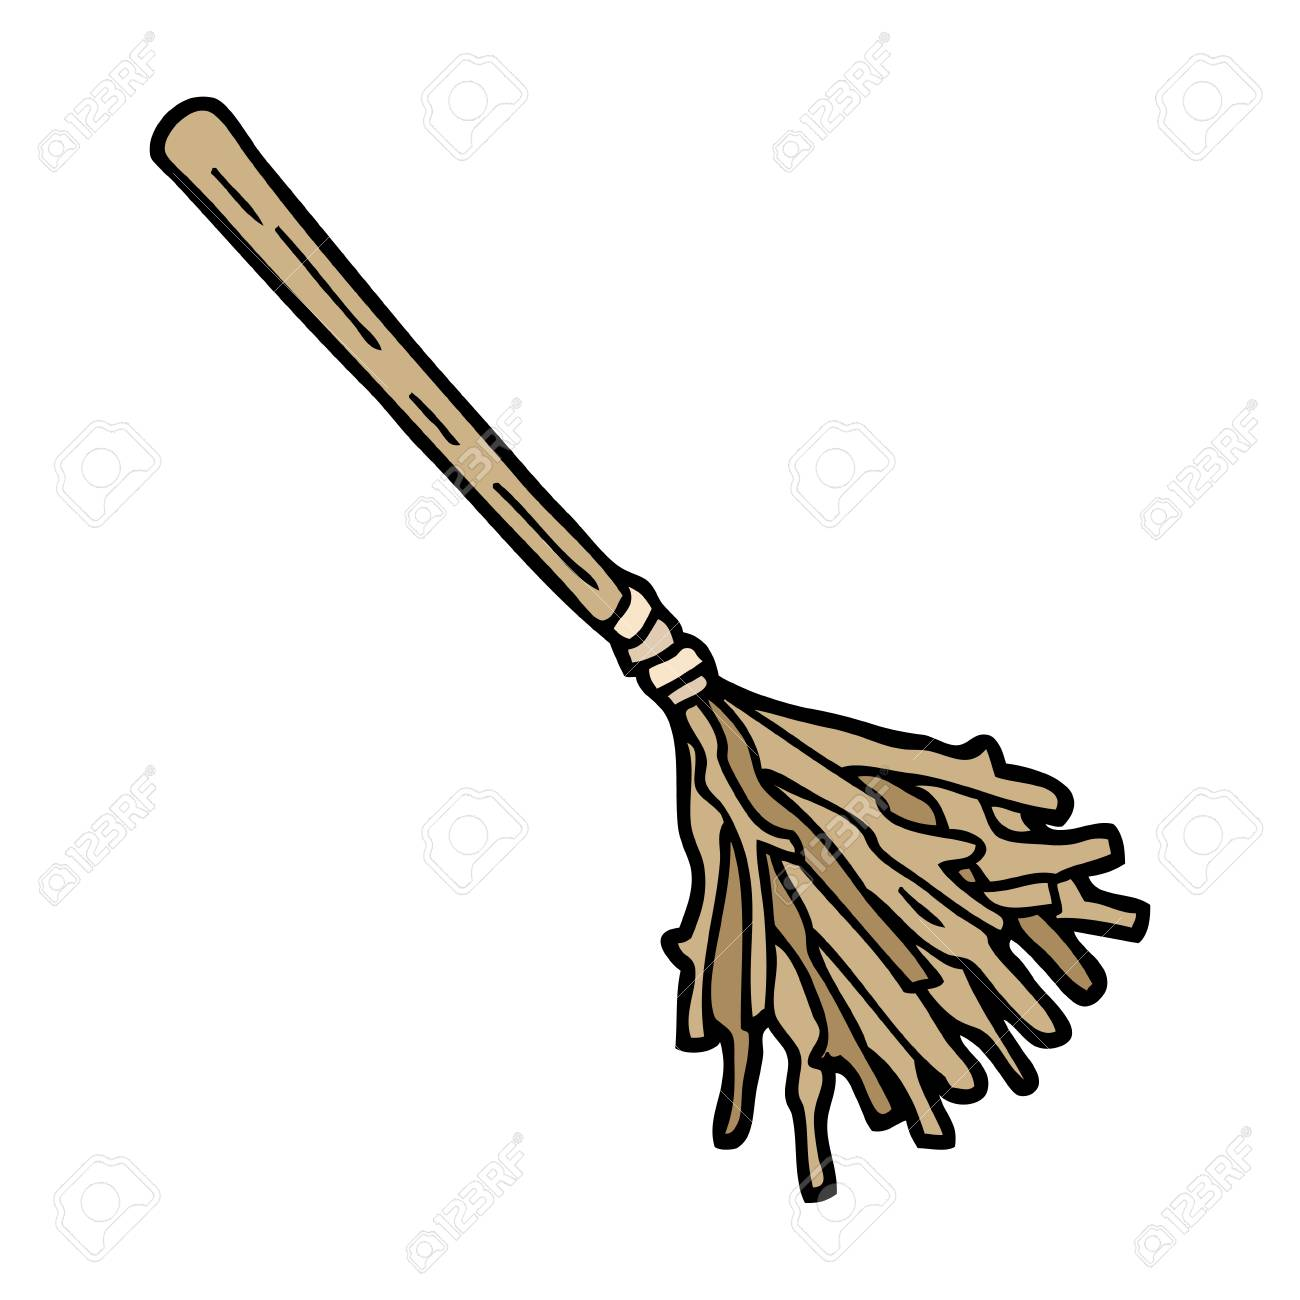 hand drawn doodle style cartoon witches broomstick - 110402705